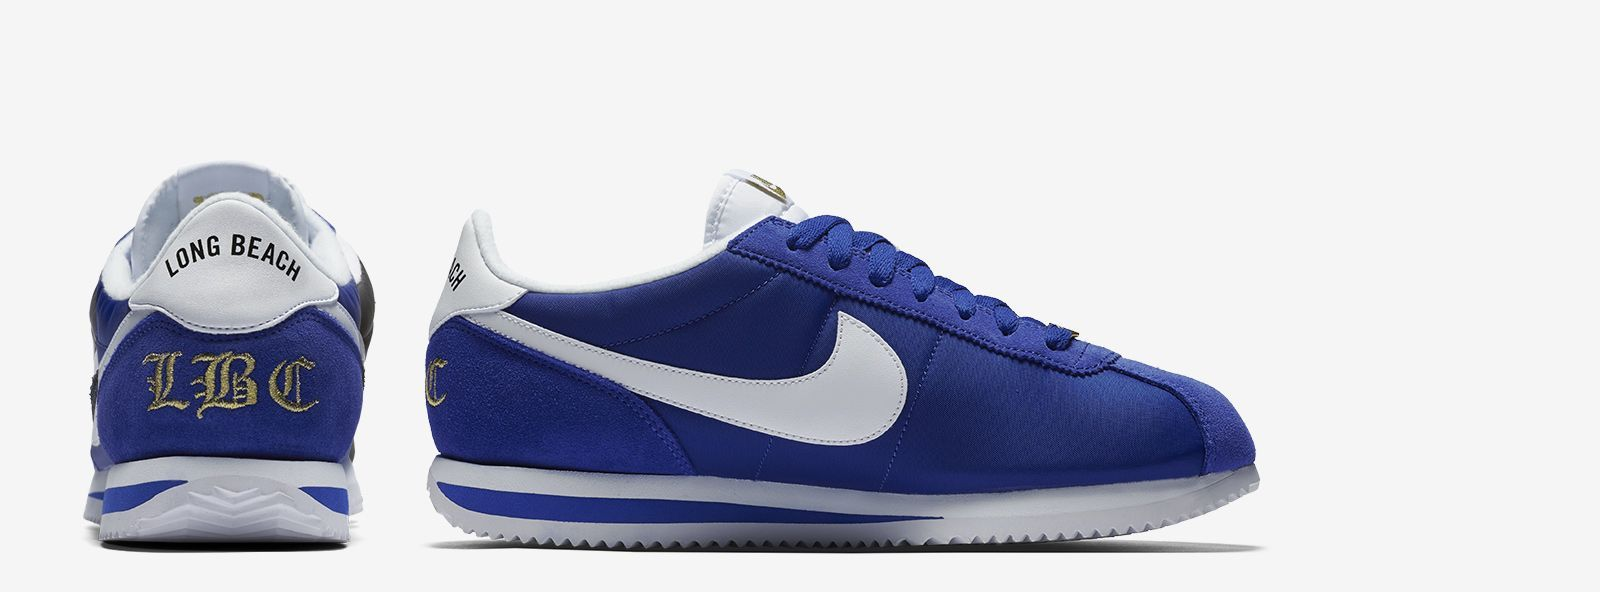 best website 2c641 4abff CORTEZ NYLON 'LONG BEACH' Inspired by LA, this limited ...